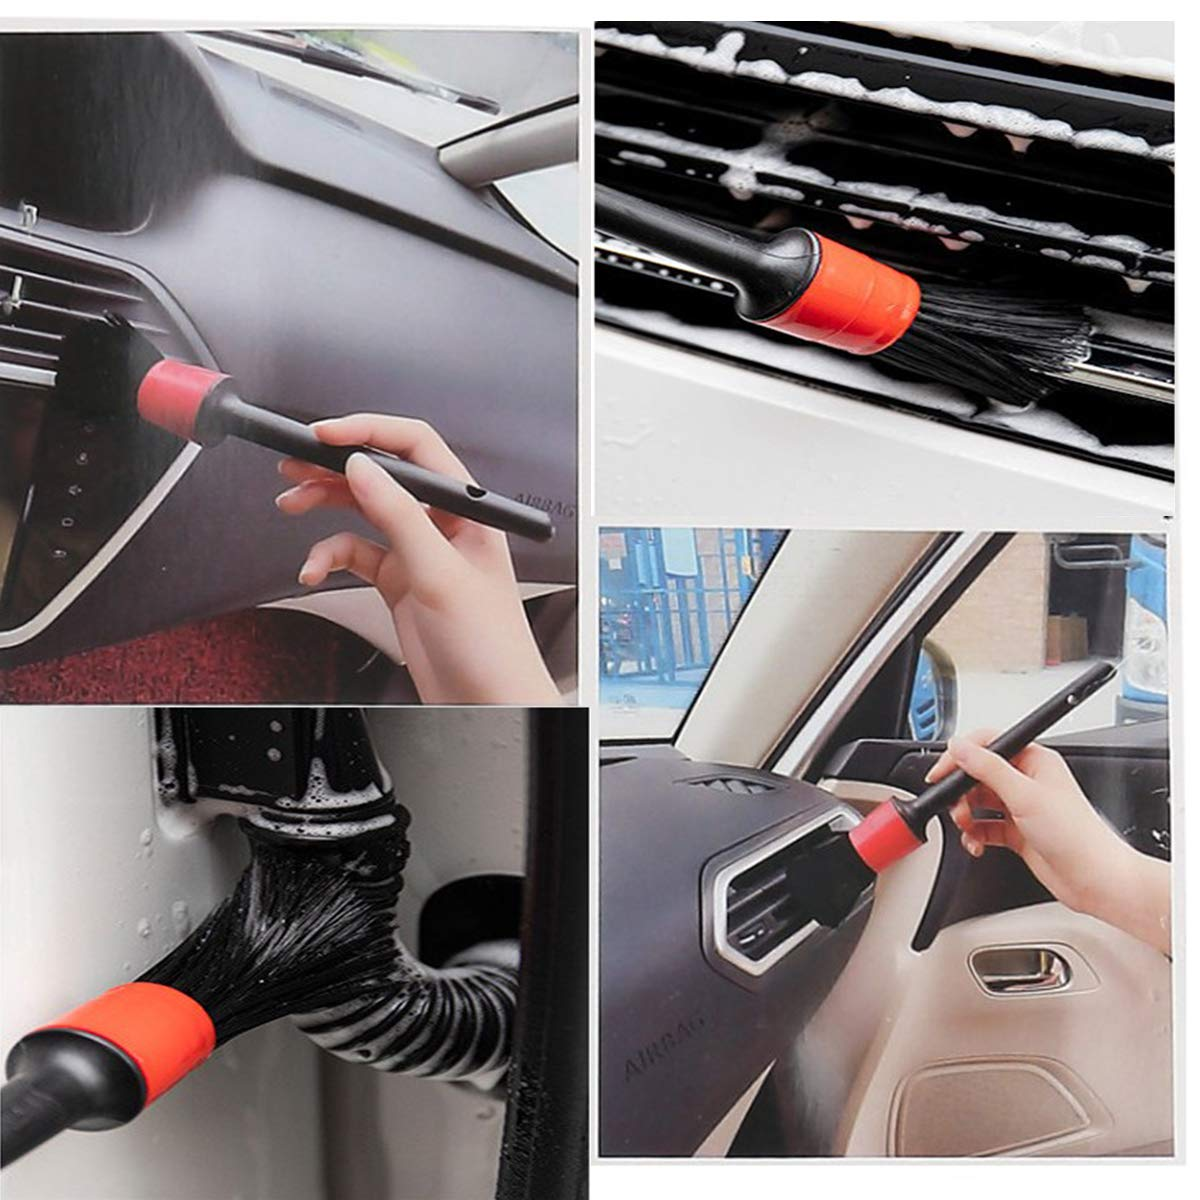 Engine Emblems Set of 5 Interior Detail Brush,YUNZI Auto Soft Detailing Brush Set ,Premium Natural Boar Hair Mixed Fiber Plastic Handle Automotive Car Detail Cleaner Brushes for Cleaning Wheels